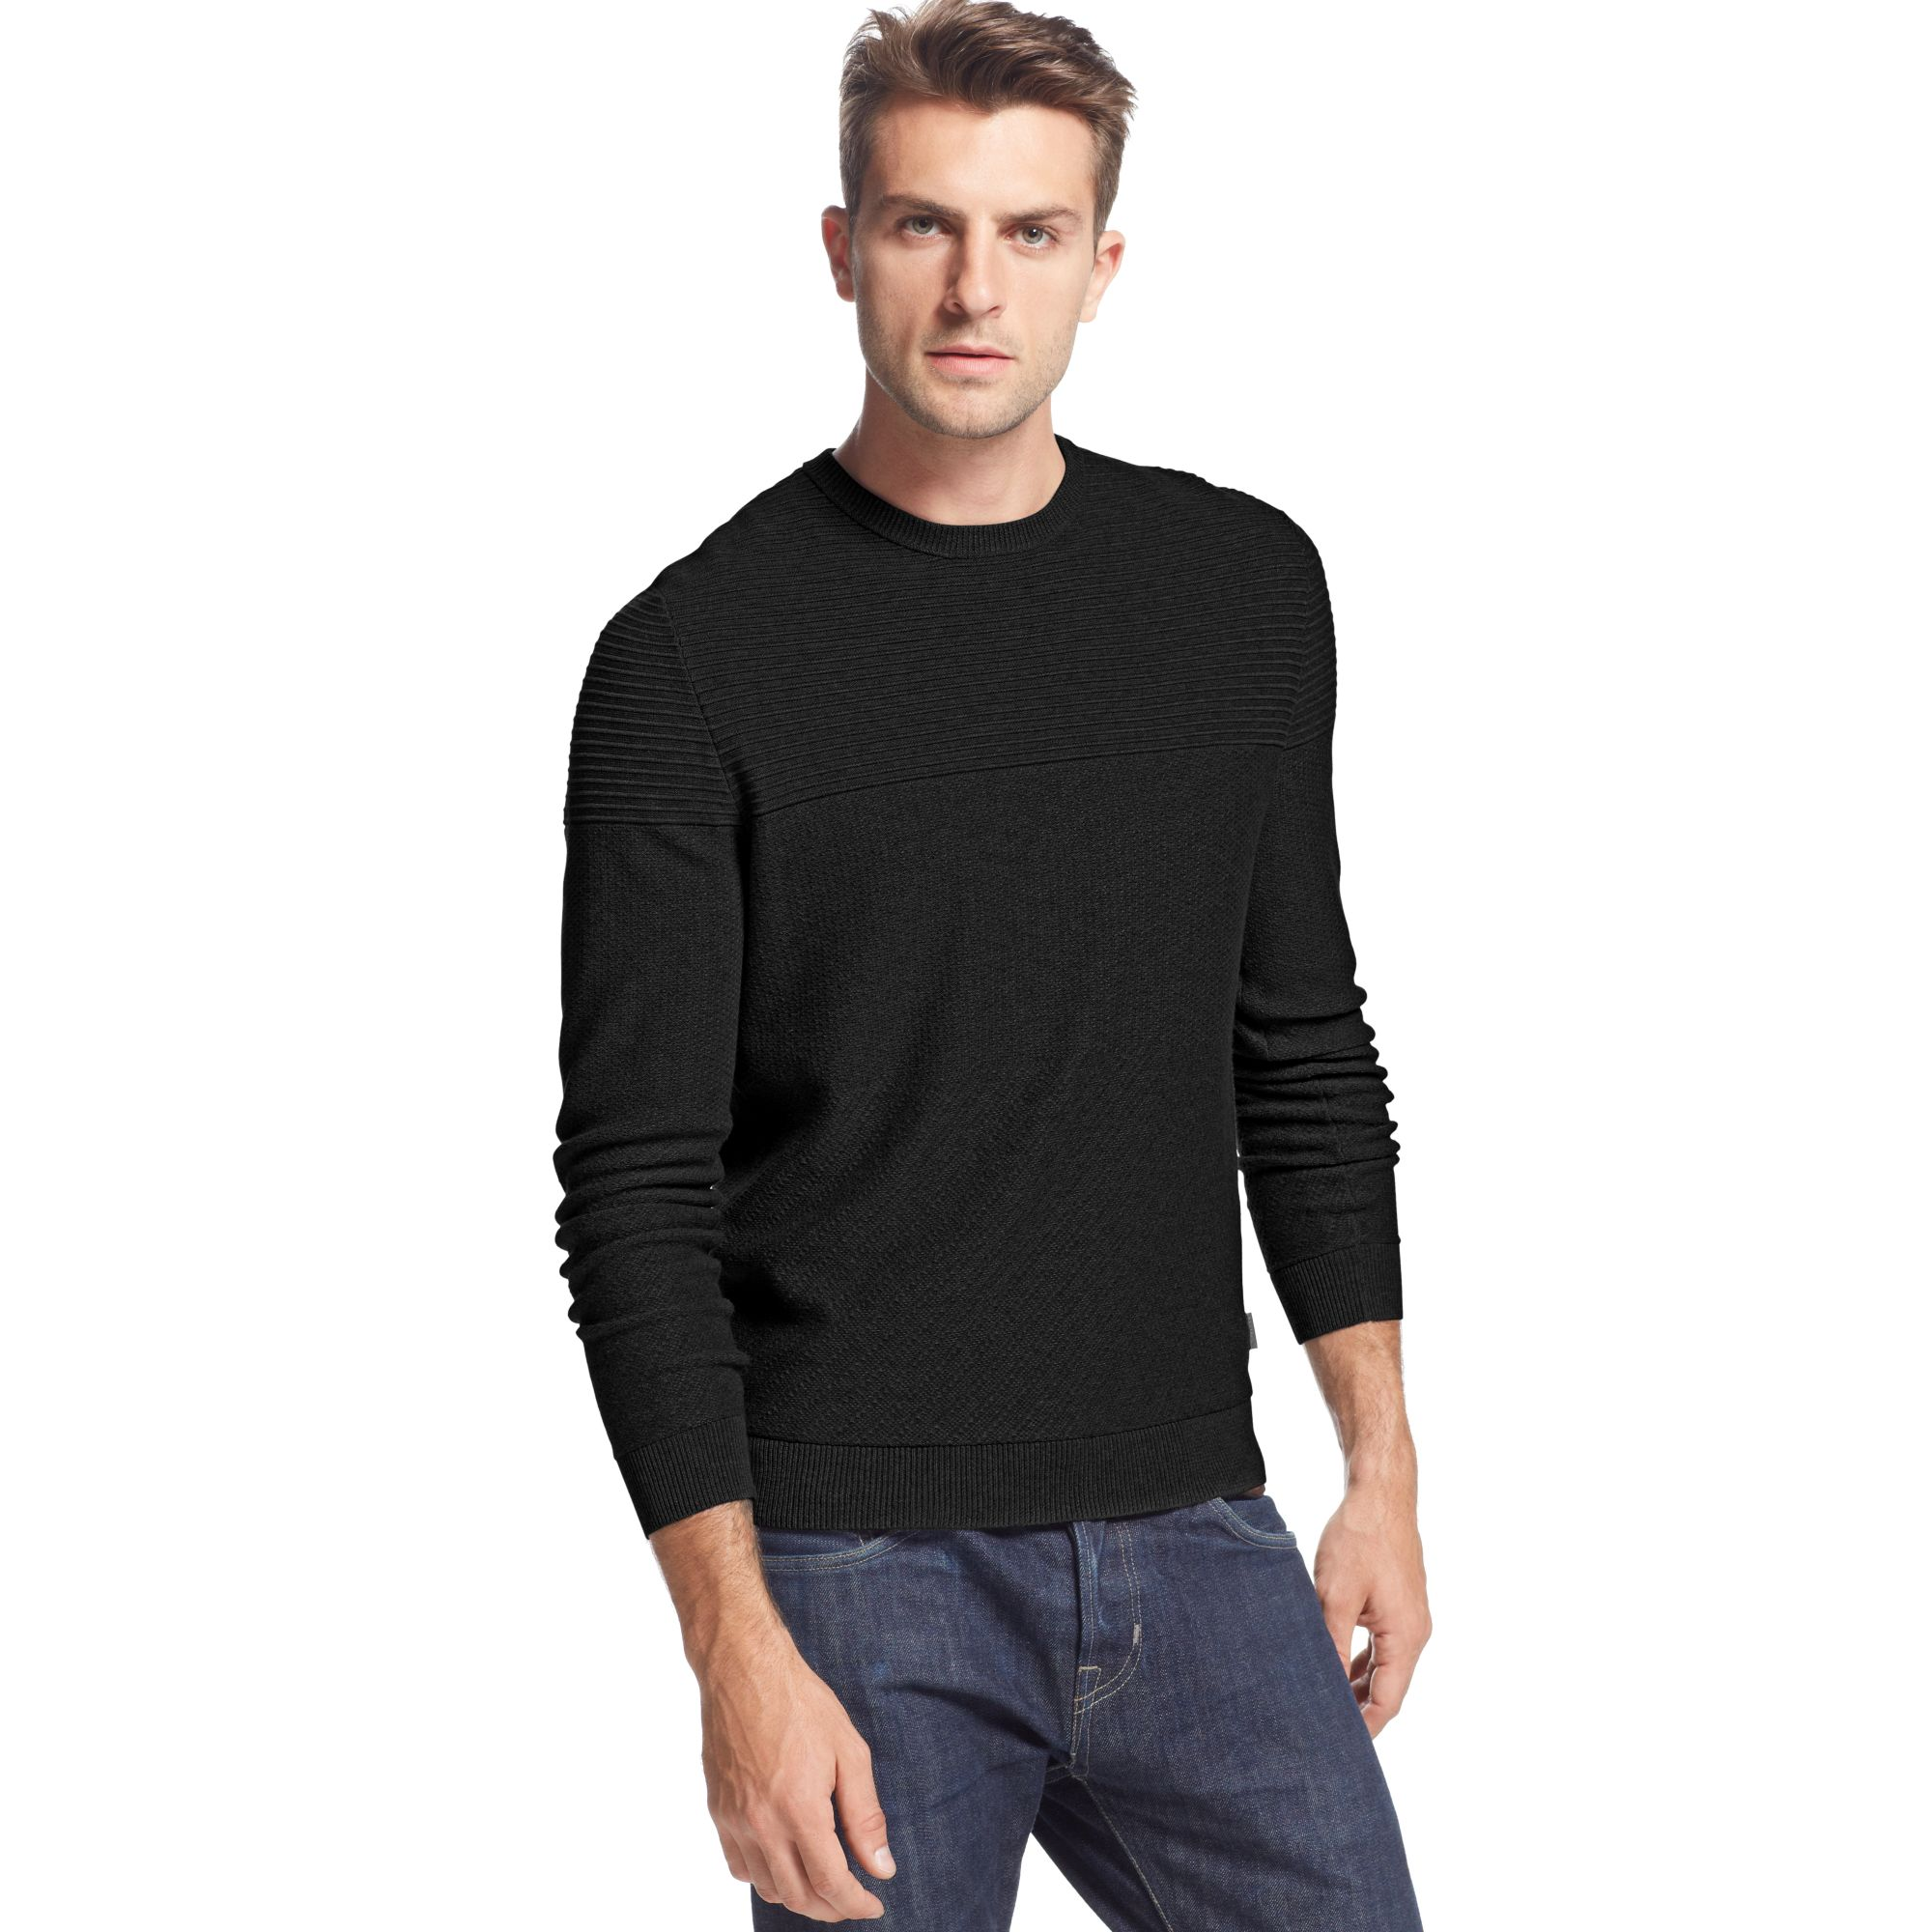 hugo boss pullover herren details about hugo boss pullover herren strick sweater v neck regular. Black Bedroom Furniture Sets. Home Design Ideas